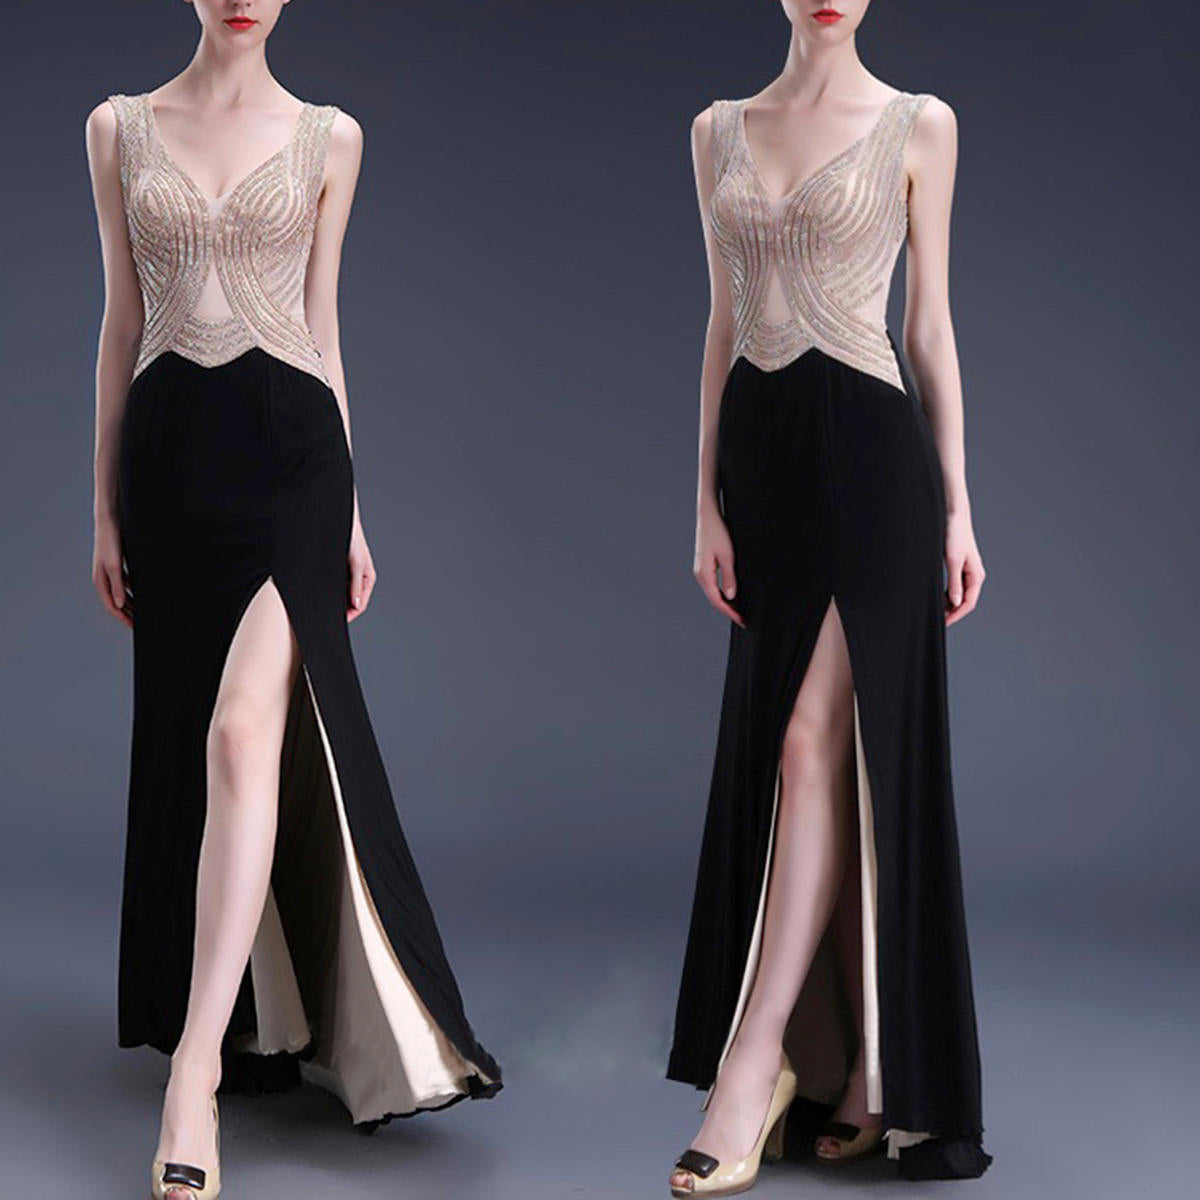 Black Prom Dressesbeaded Evening Gownssexy Formal Dressessparkle